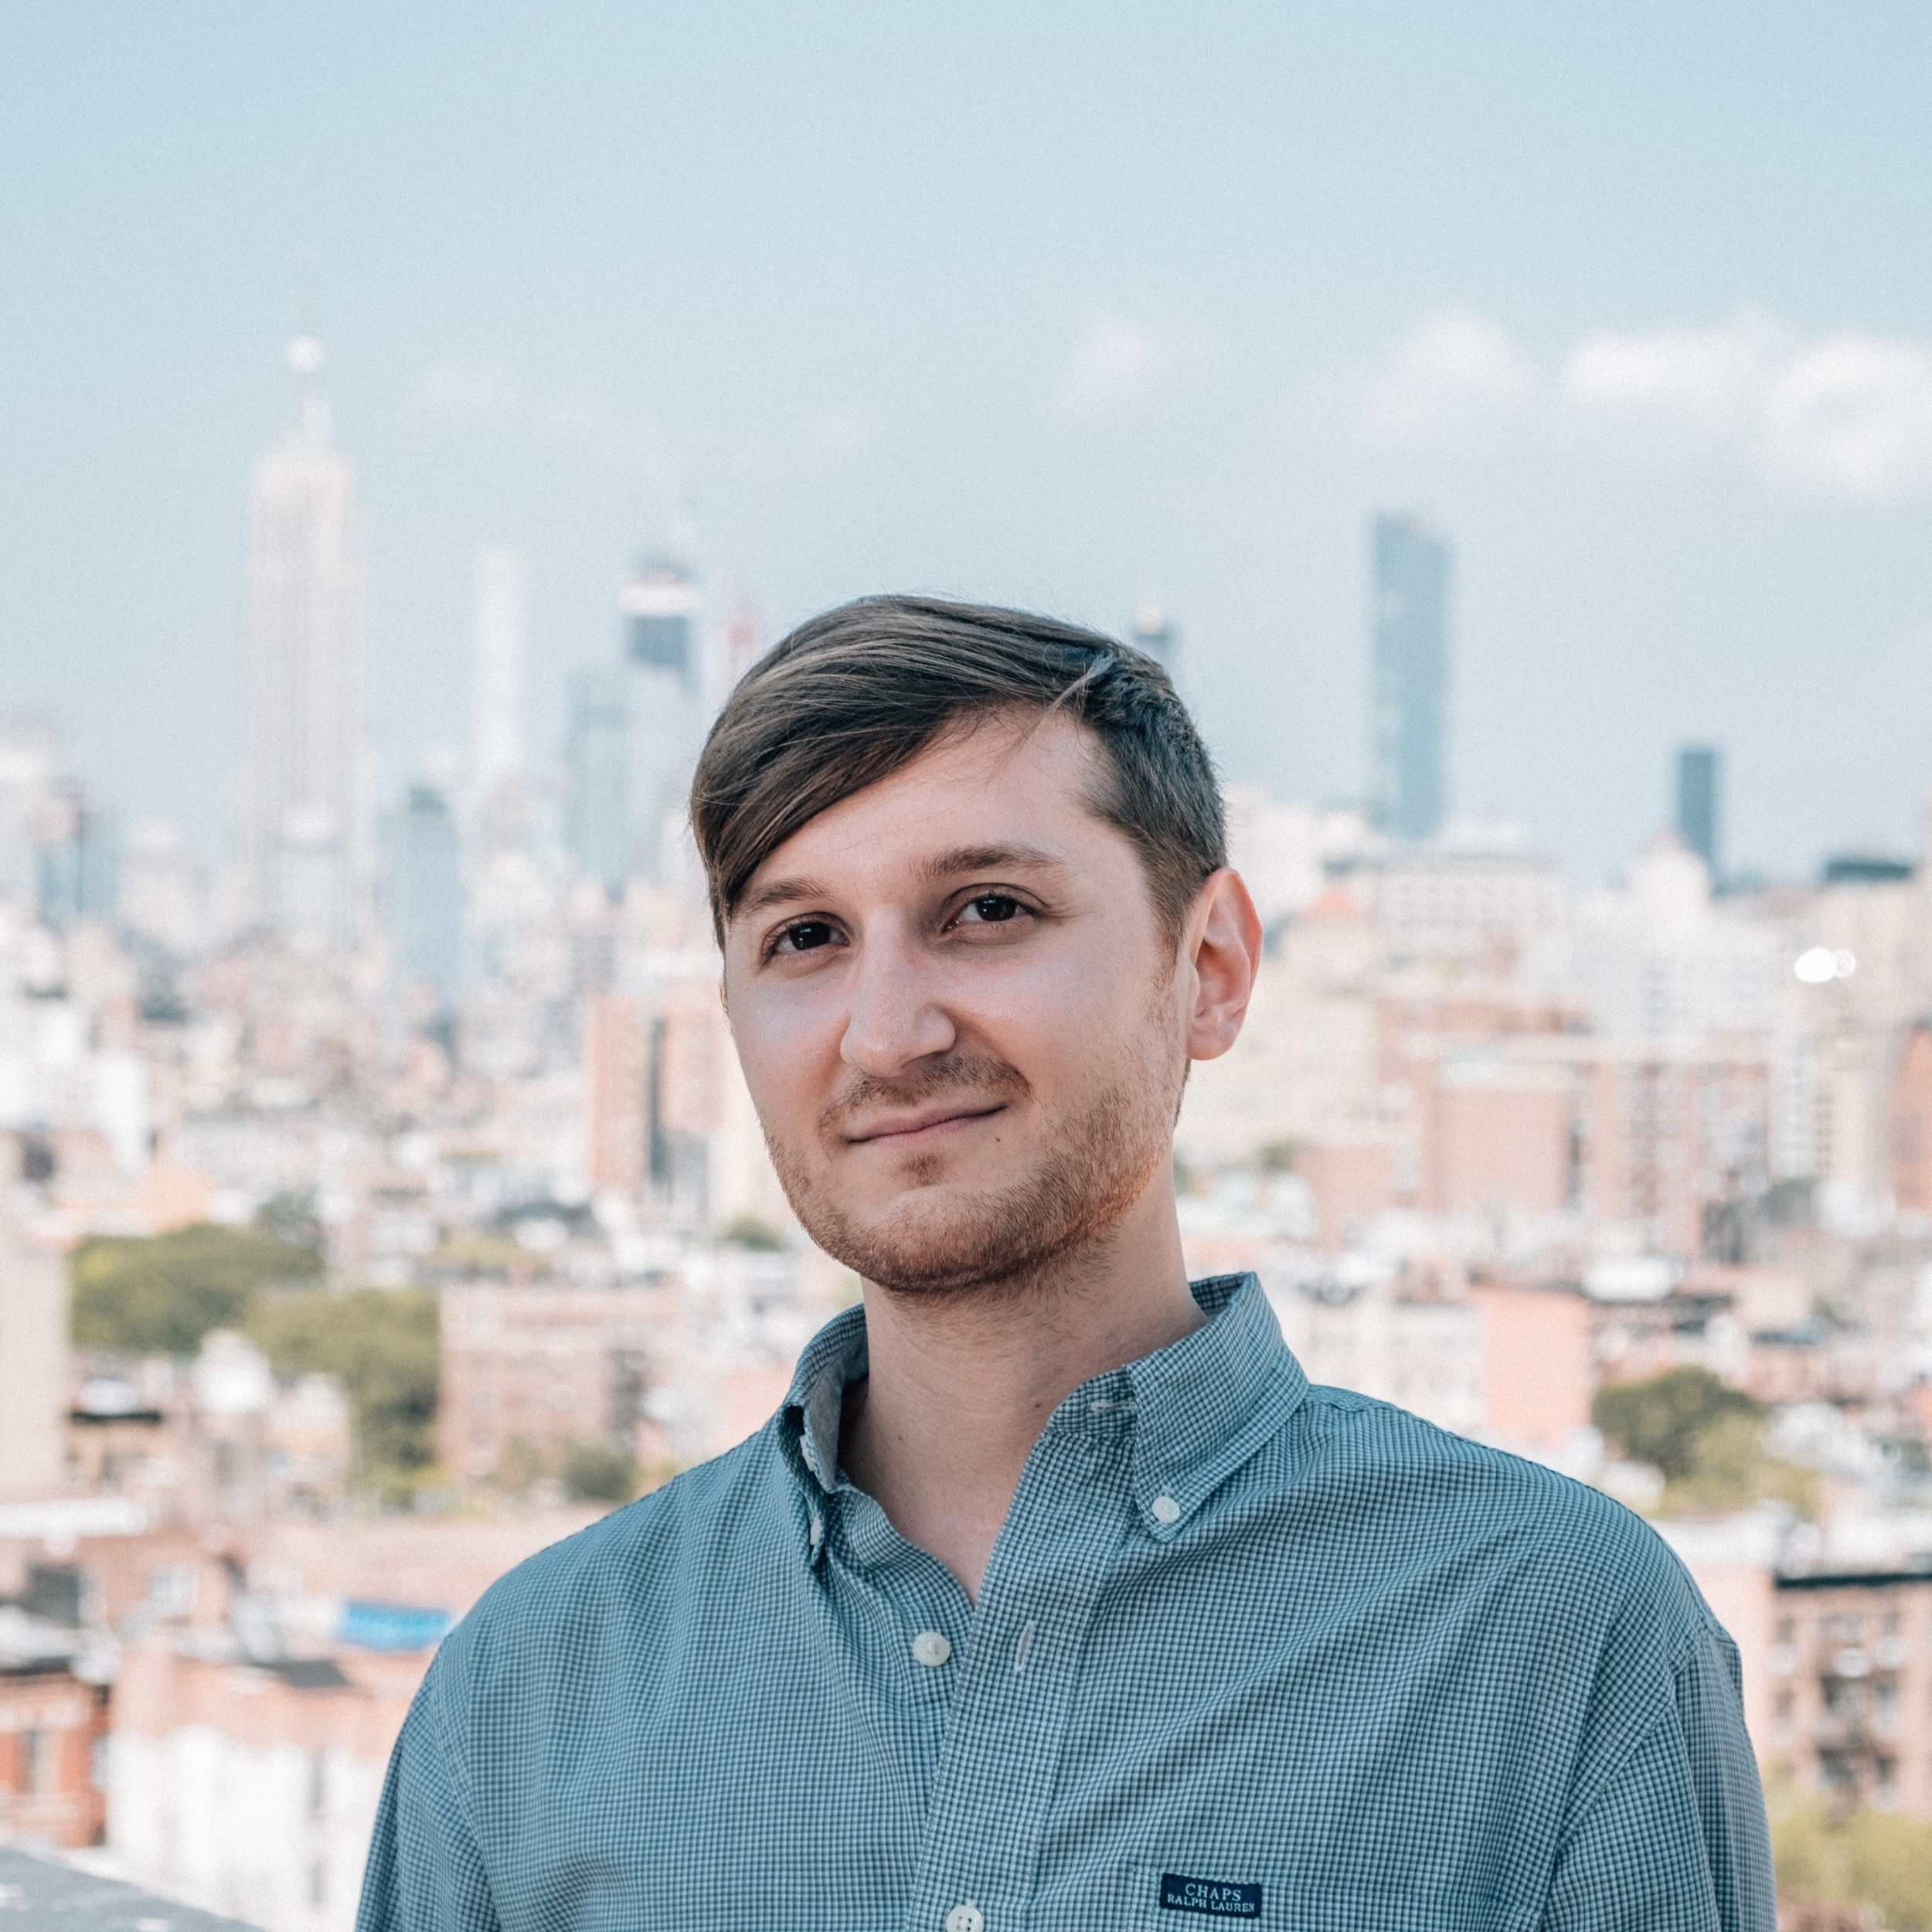 Joey Giampietro - Architectural Designerjgiampietro@inc.nycJoey Giampietro originally from Youngstown, Ohio, is a graduate of the University of Pennsylvania, where he obtained a Master of Architecture degree and a certificate in Emerging Design and Research. Since then he has led several projects of varying scale and program through all phases. In addition to his work on architectural projects, he teaches visualization courses at Pratt Institute and lately has been working on a research project about acoustics; specifically, the resonance properties in various materials and their experiential effects while in a particular space. When he isn't doing any of those things he enjoys going to live shows and restaurants around the city.